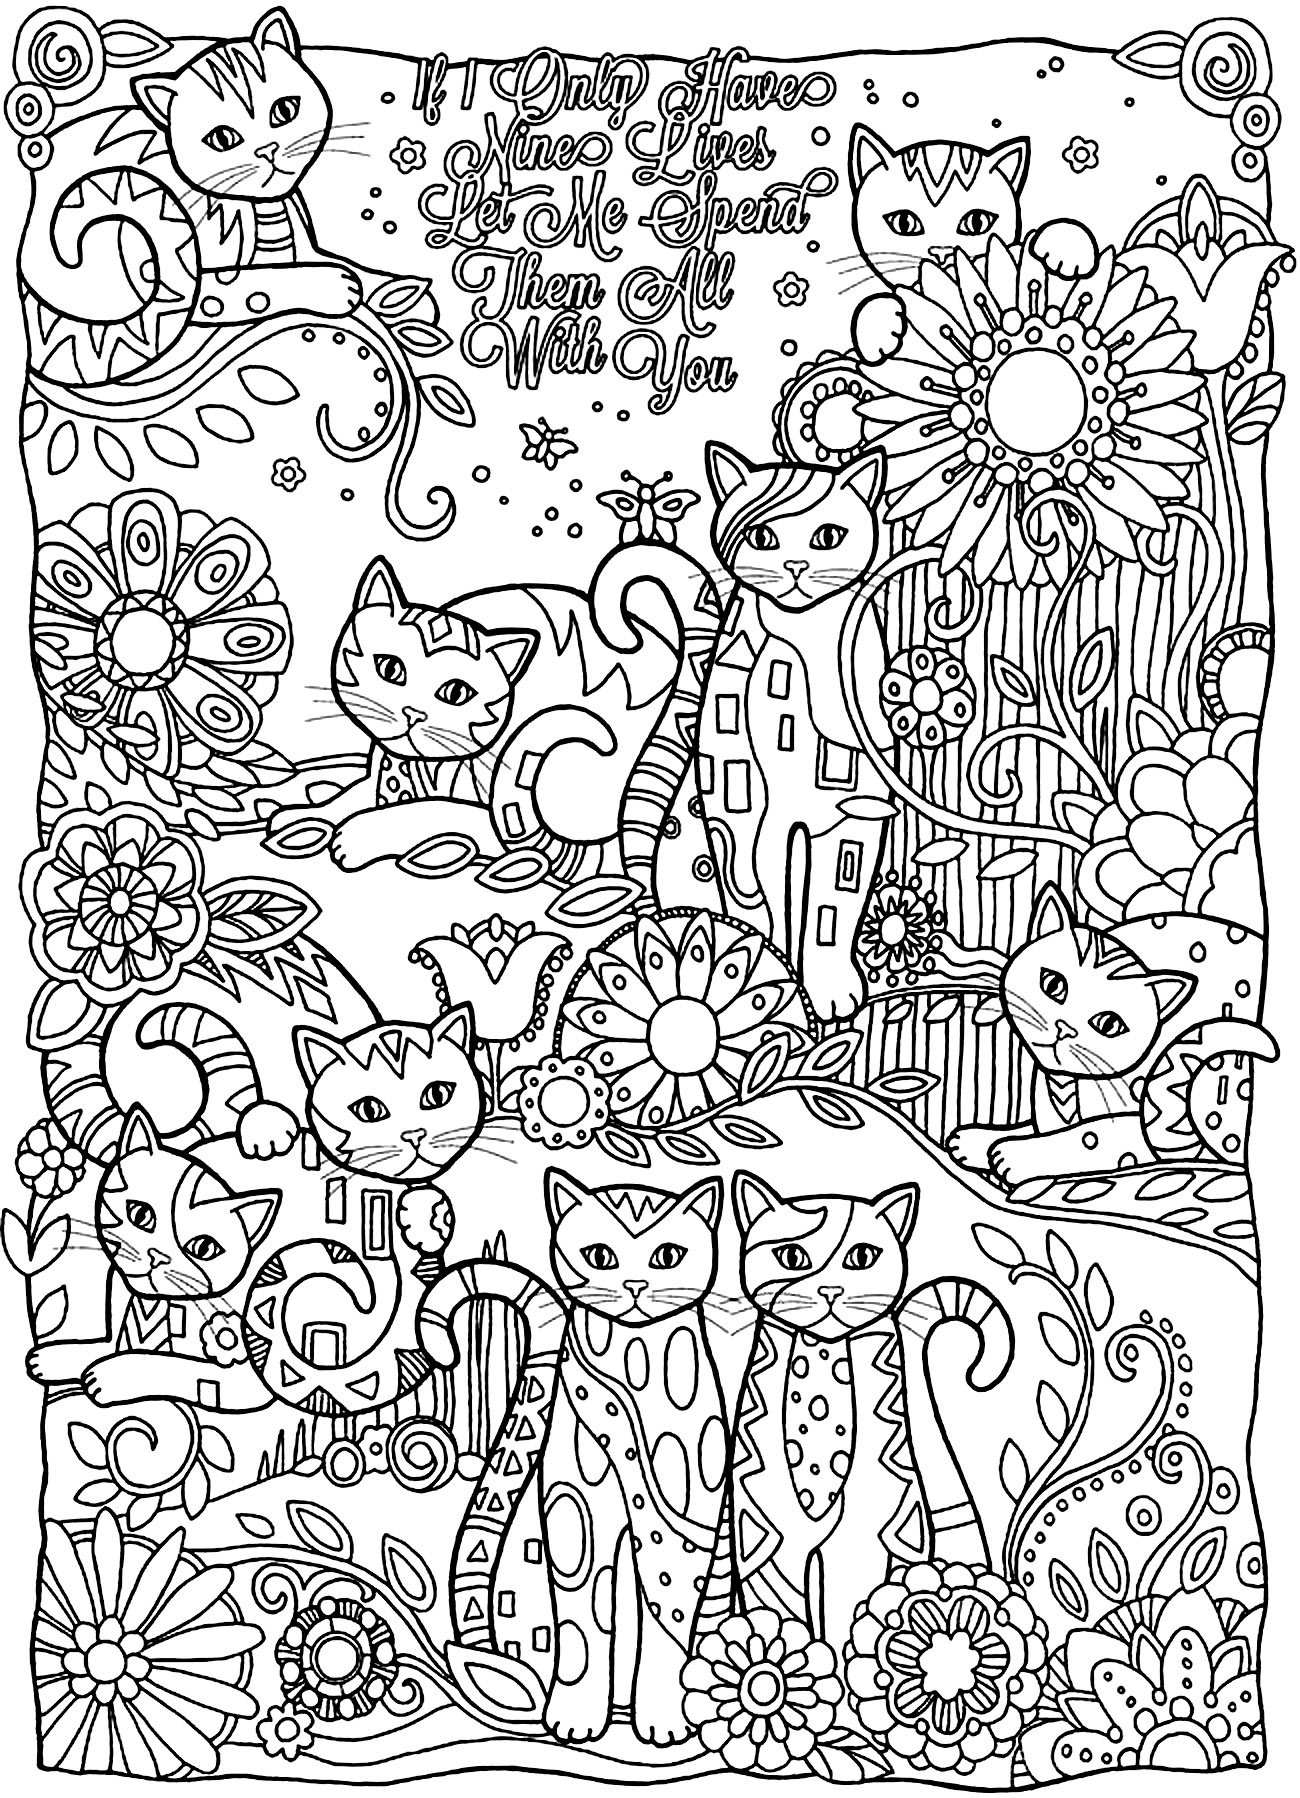 prodigal son coloring pages Collection-Abstract Coloring Pages for Adults Luxury Prodigal son Coloring Page Fresh I Pinimg 736x 0c 0d 4-q